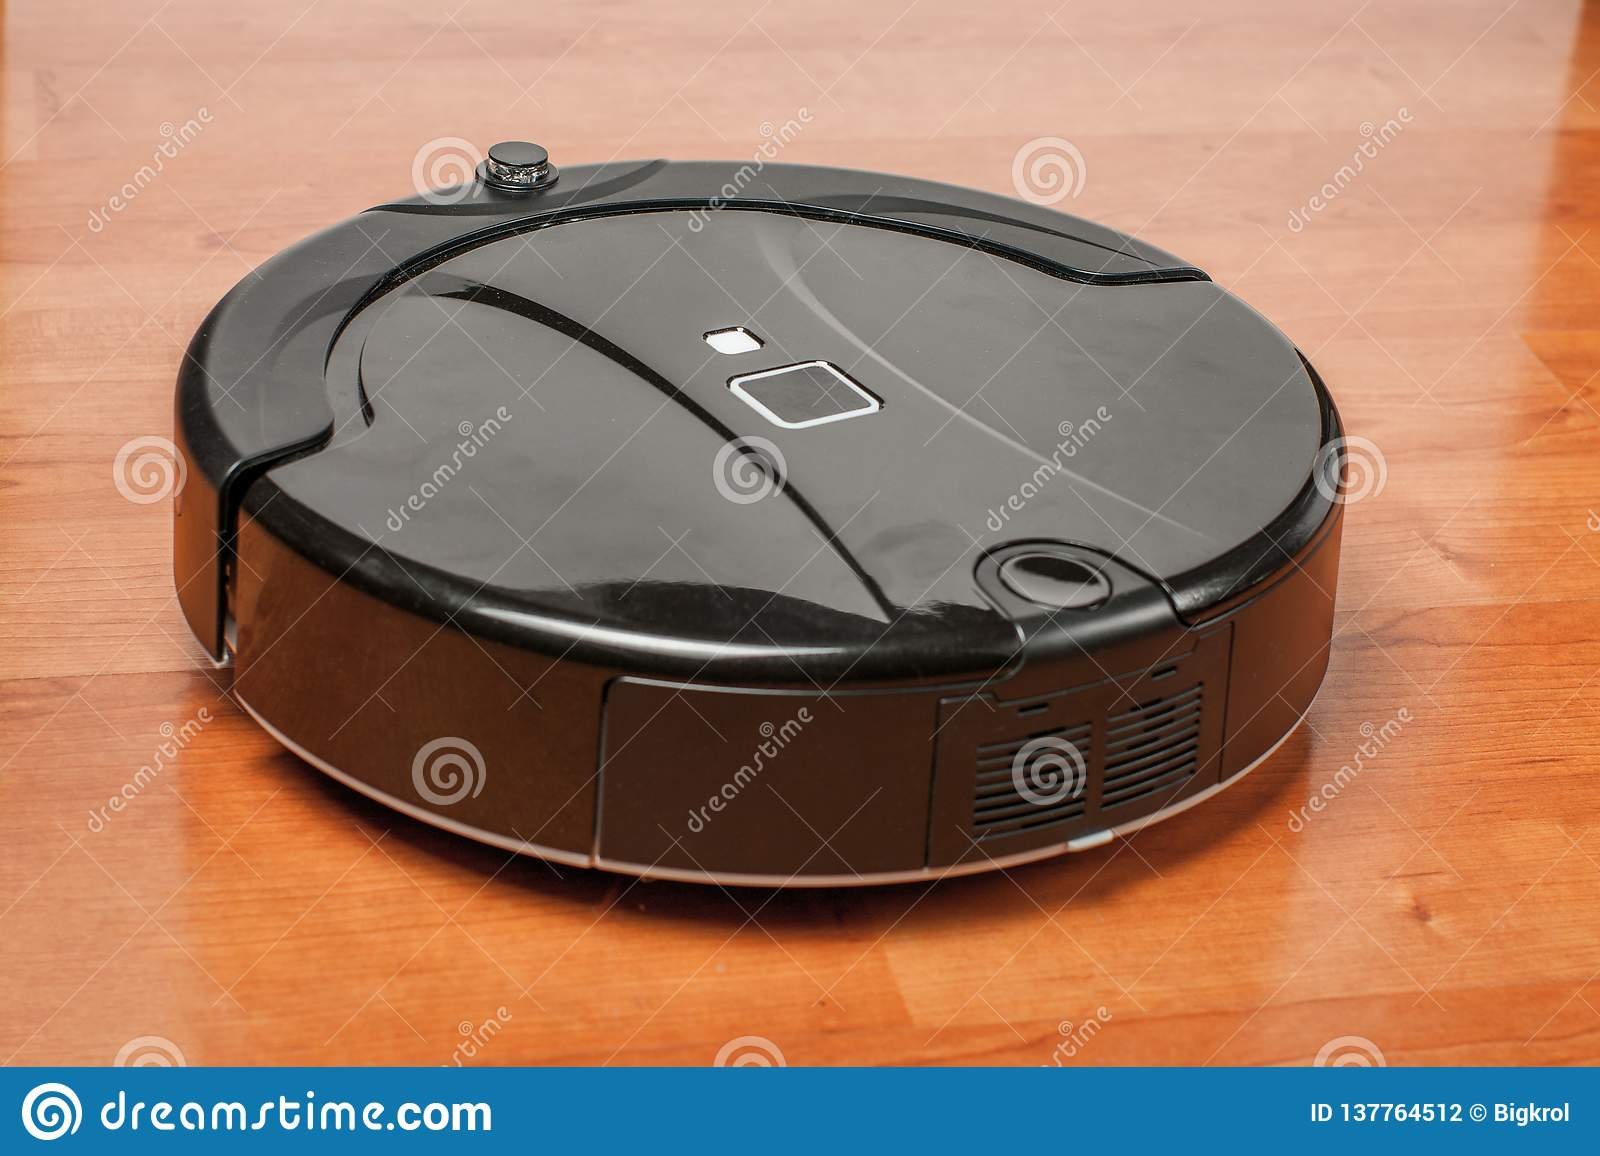 Black Robotic Vacuum Cleaner Runs On Laminate Floor Closeup  Robot